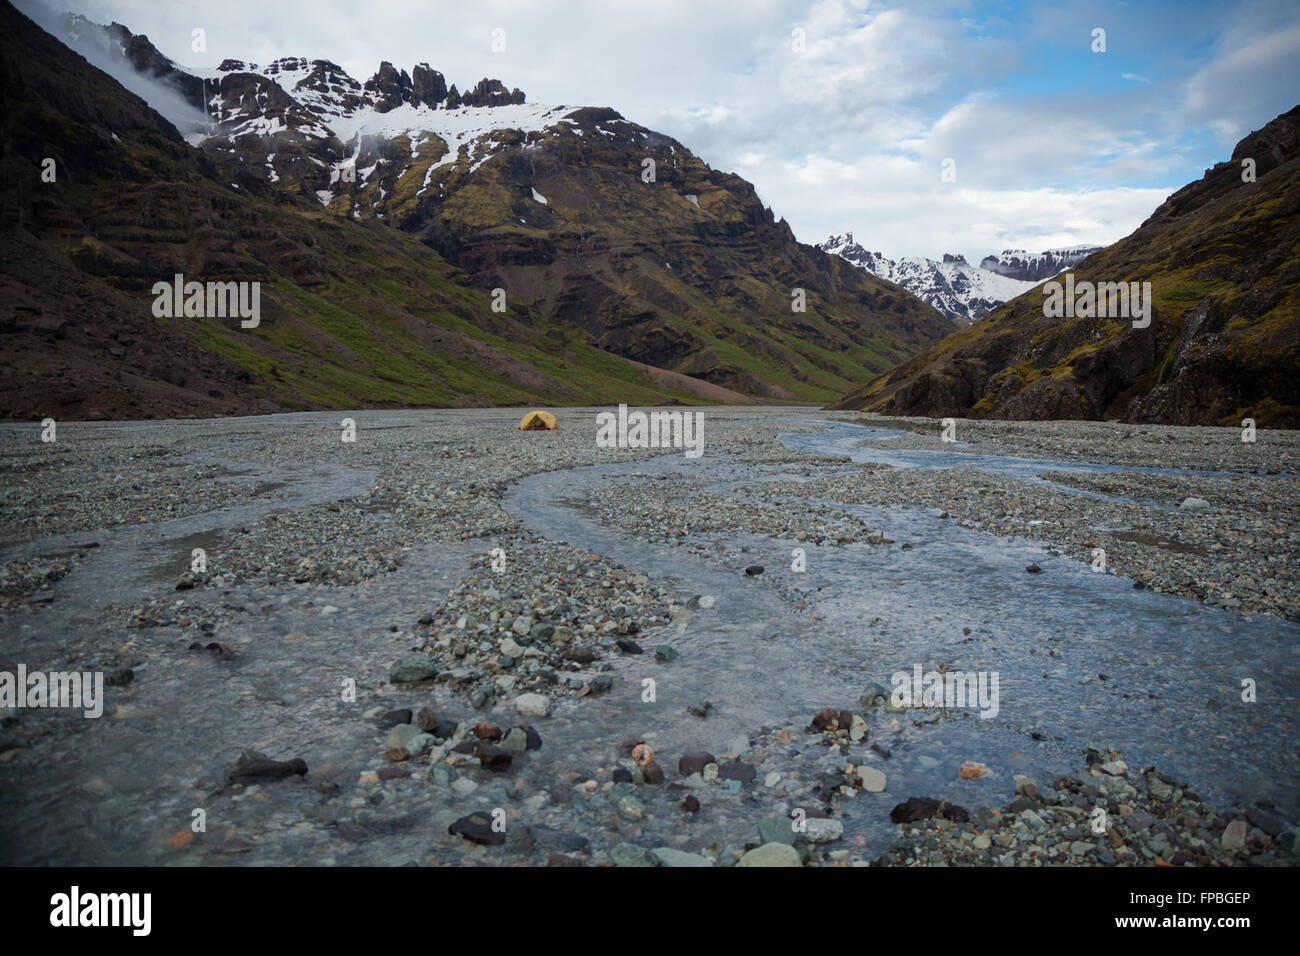 Back country camping in Iceland, Kjos, Skaftafell National Park, Iceland - Stock Image